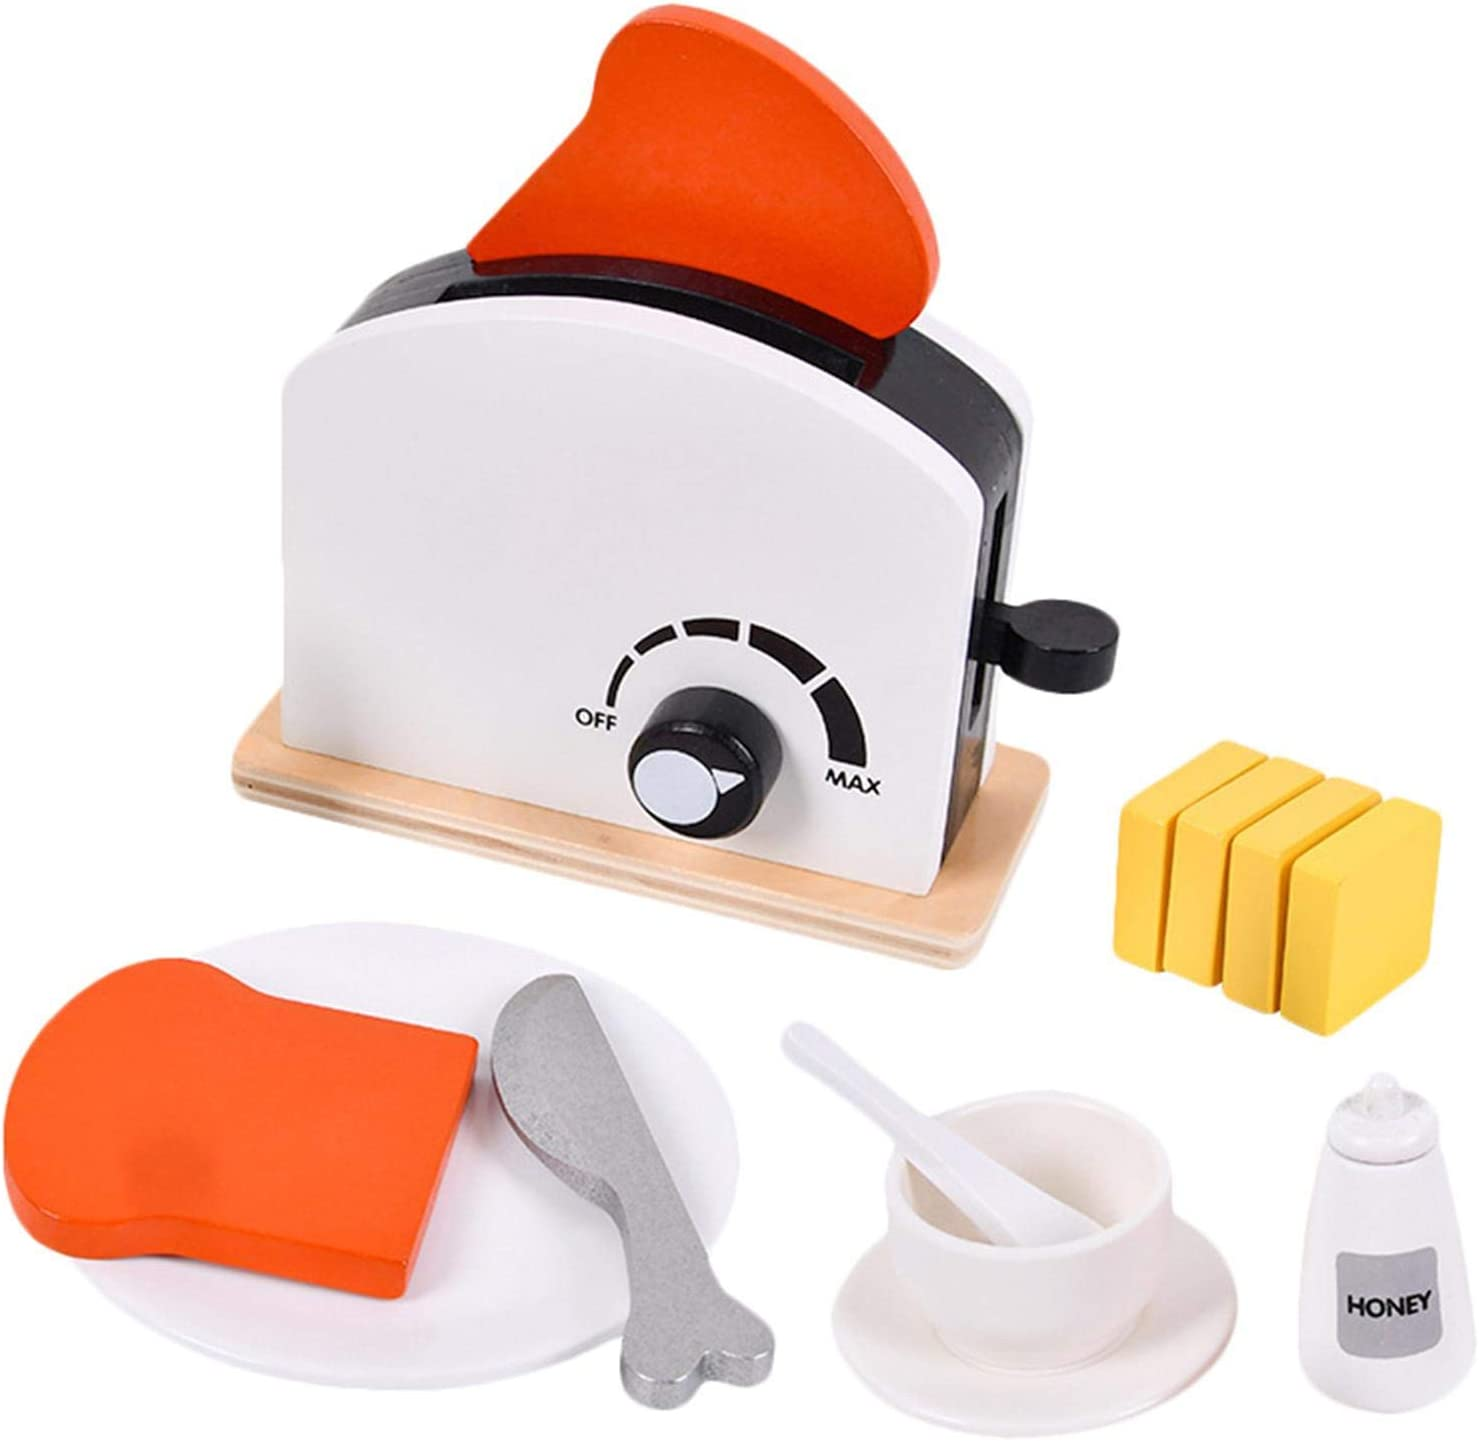 Toy Kitchen Wooden Max 58% OFF Pop-Up Toaster Up Pop Set Play We OFFer at cheap prices Woode